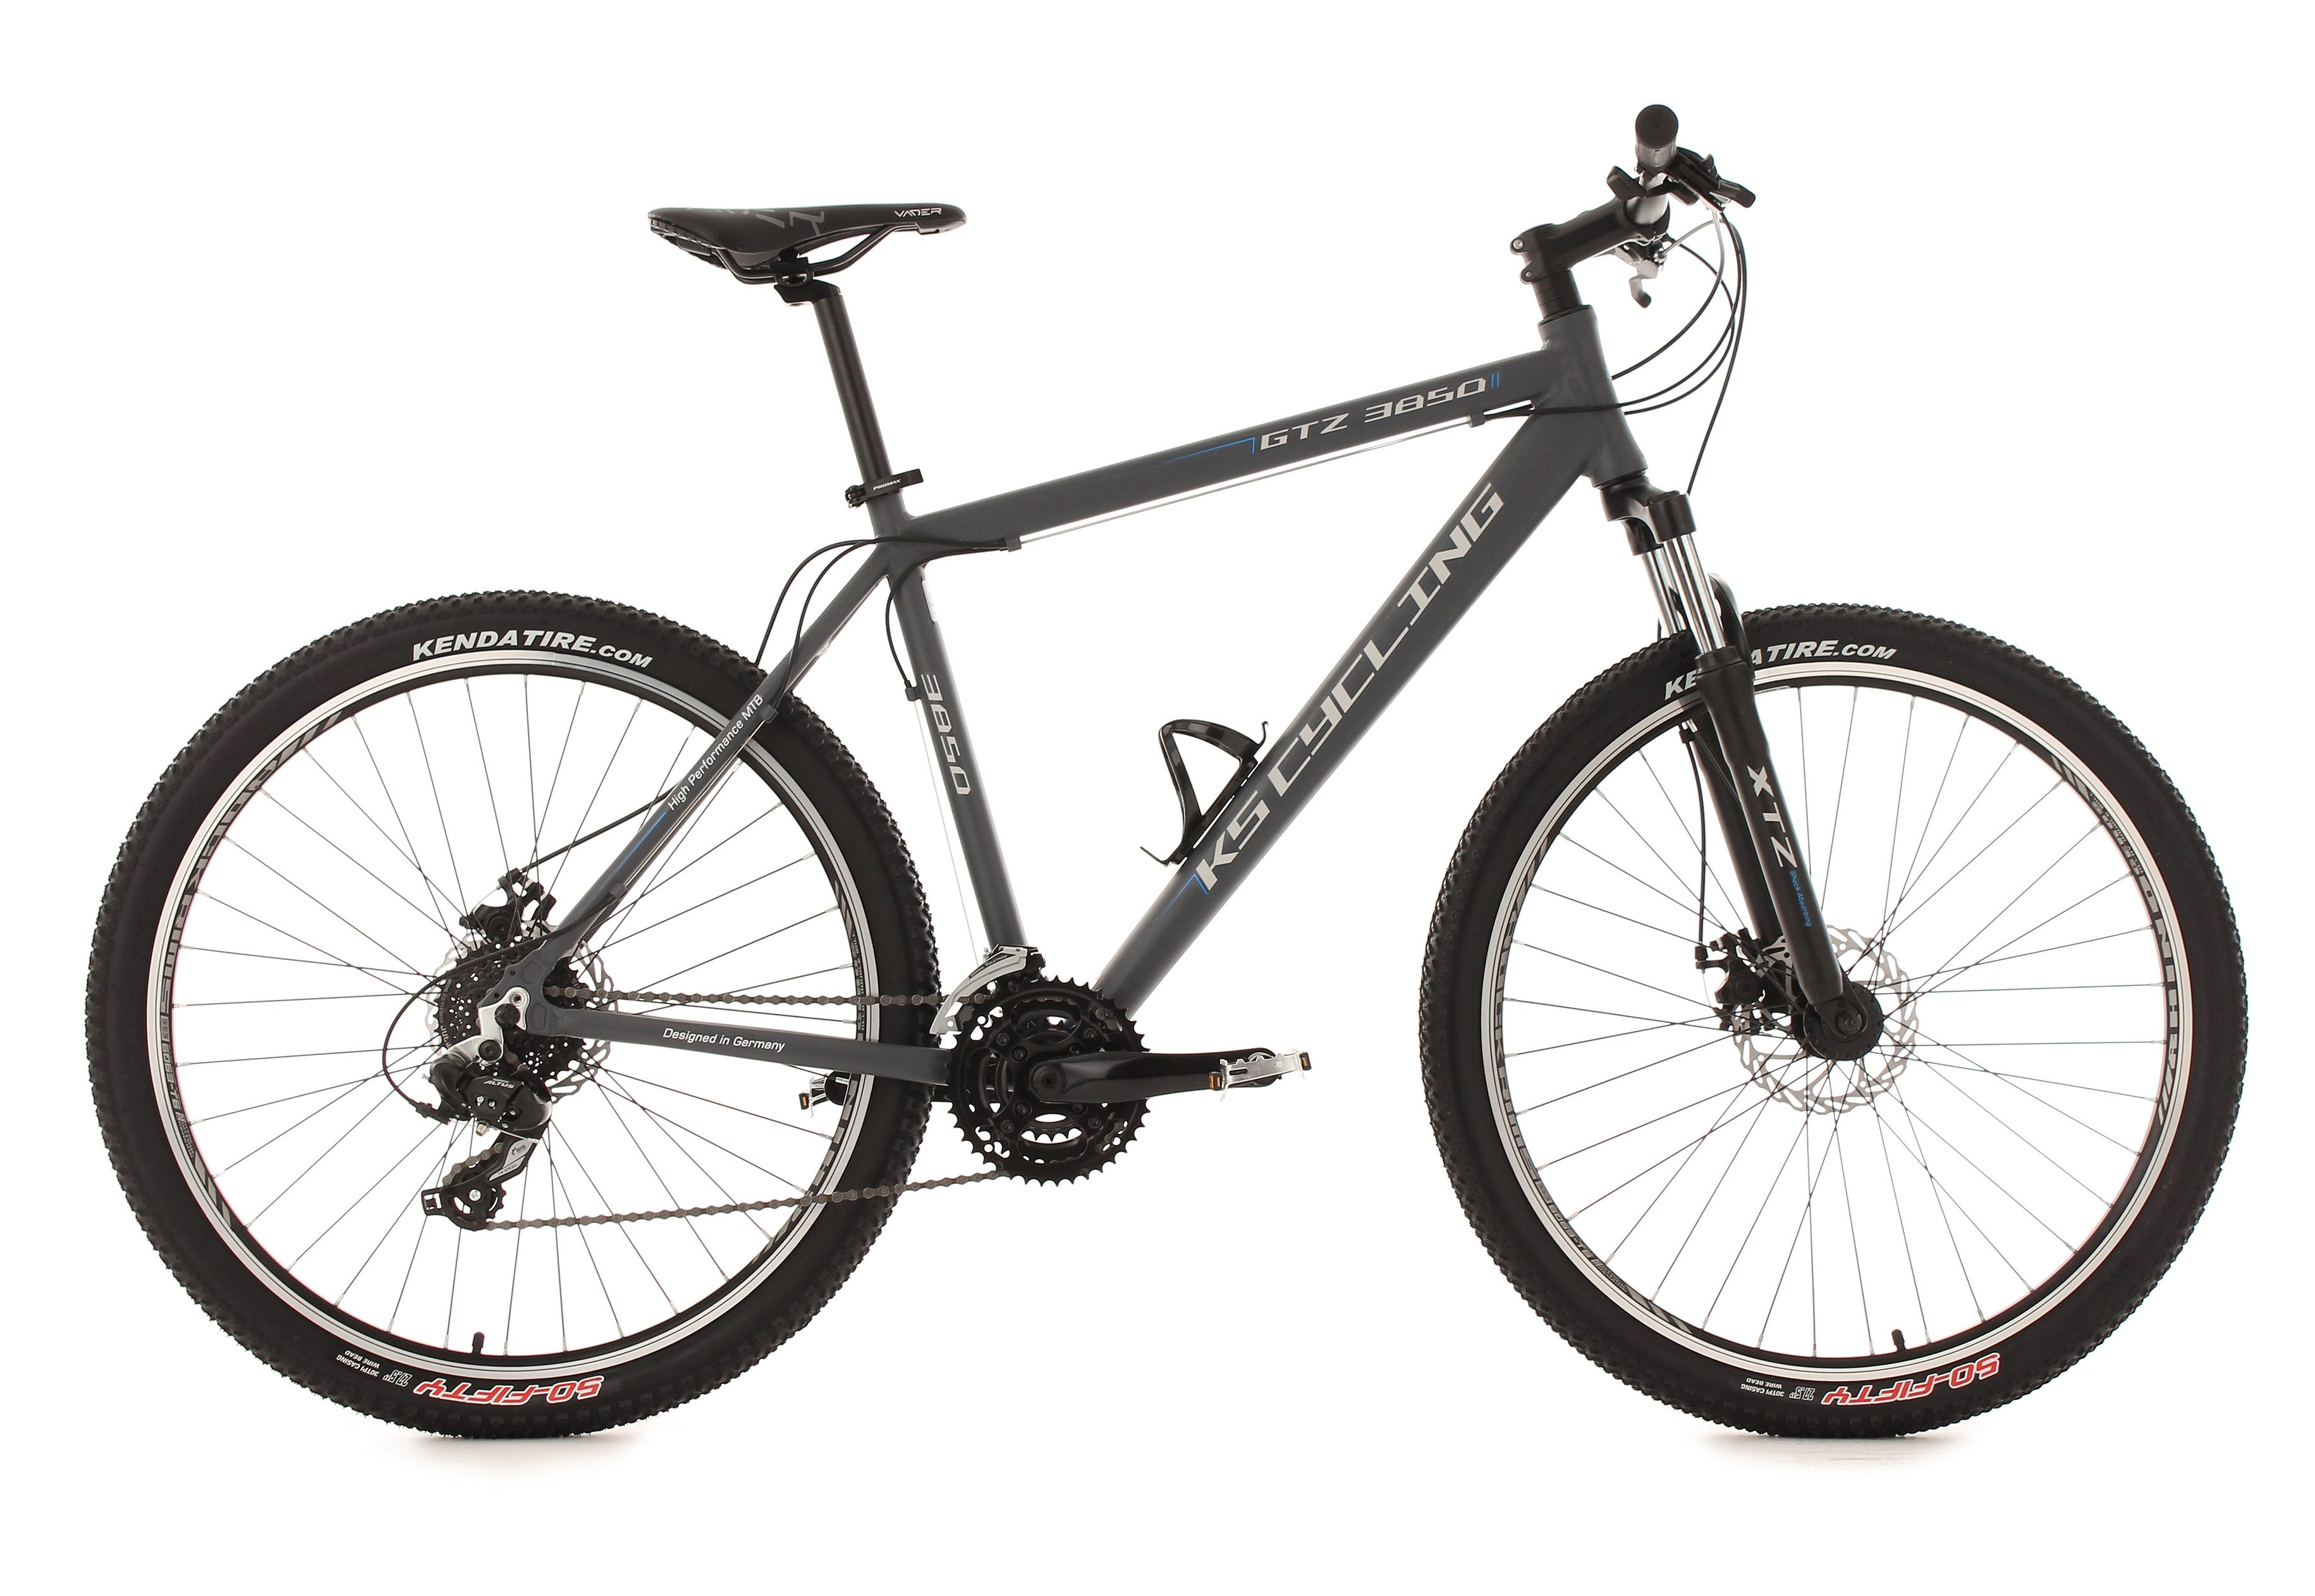 KS Cycling Hardtail-Mountainbike, 27,5 Zoll, anthrazit, 24-Gang-Kettenschaltung, »GTZ«